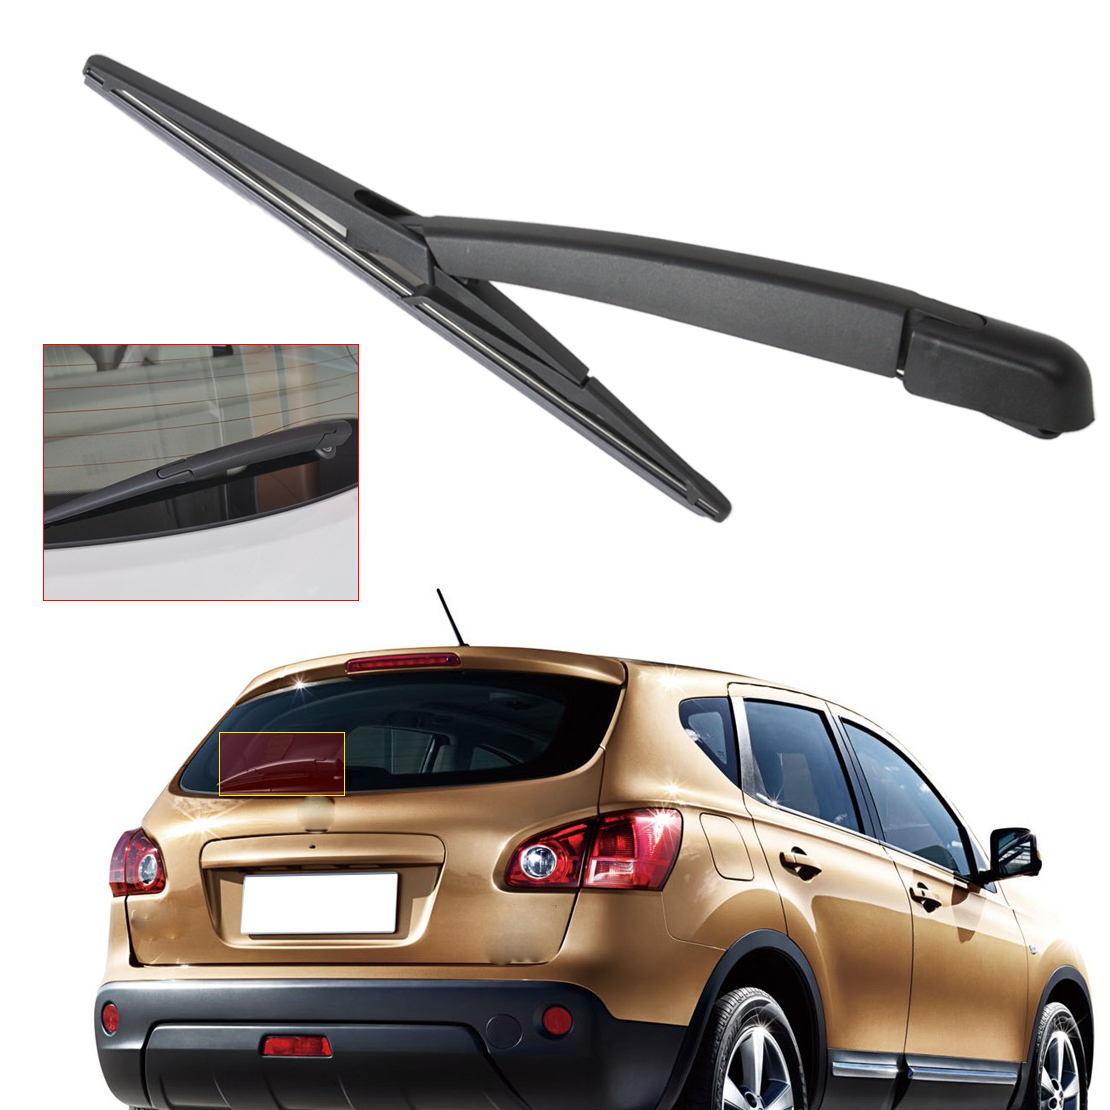 CITALL Car Rear Window Windshield Wiper Arm + Wiper Blade For Nissan Qashqai 2008 2009 2010 2011 2012 2013